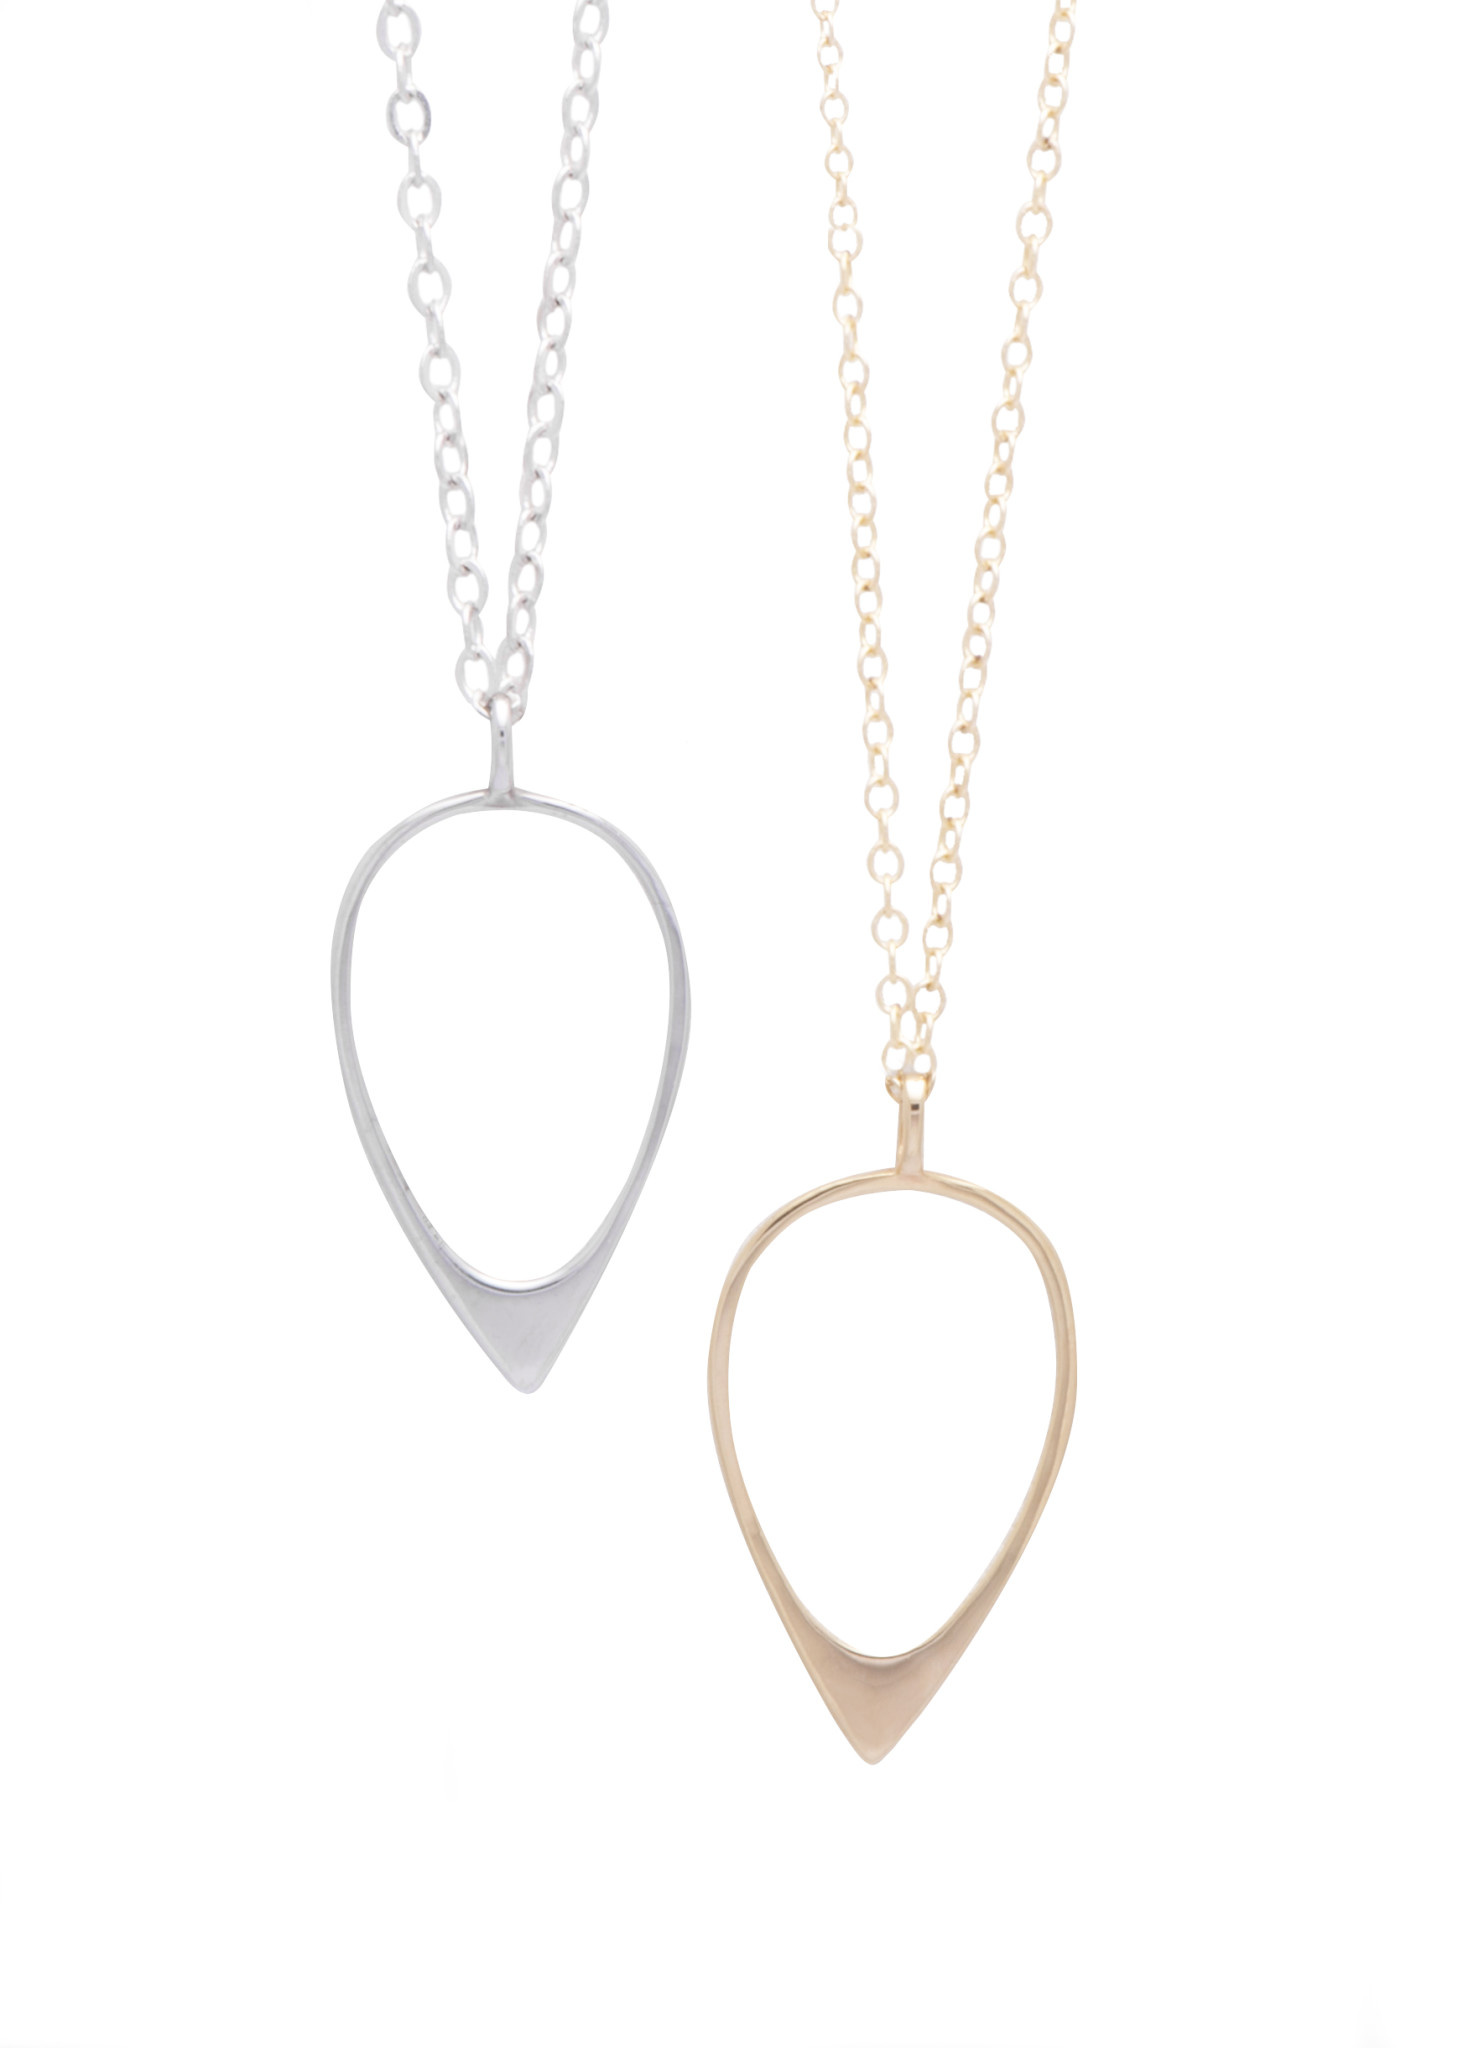 Sarah Mulder Jewelry Ariam Necklace Small